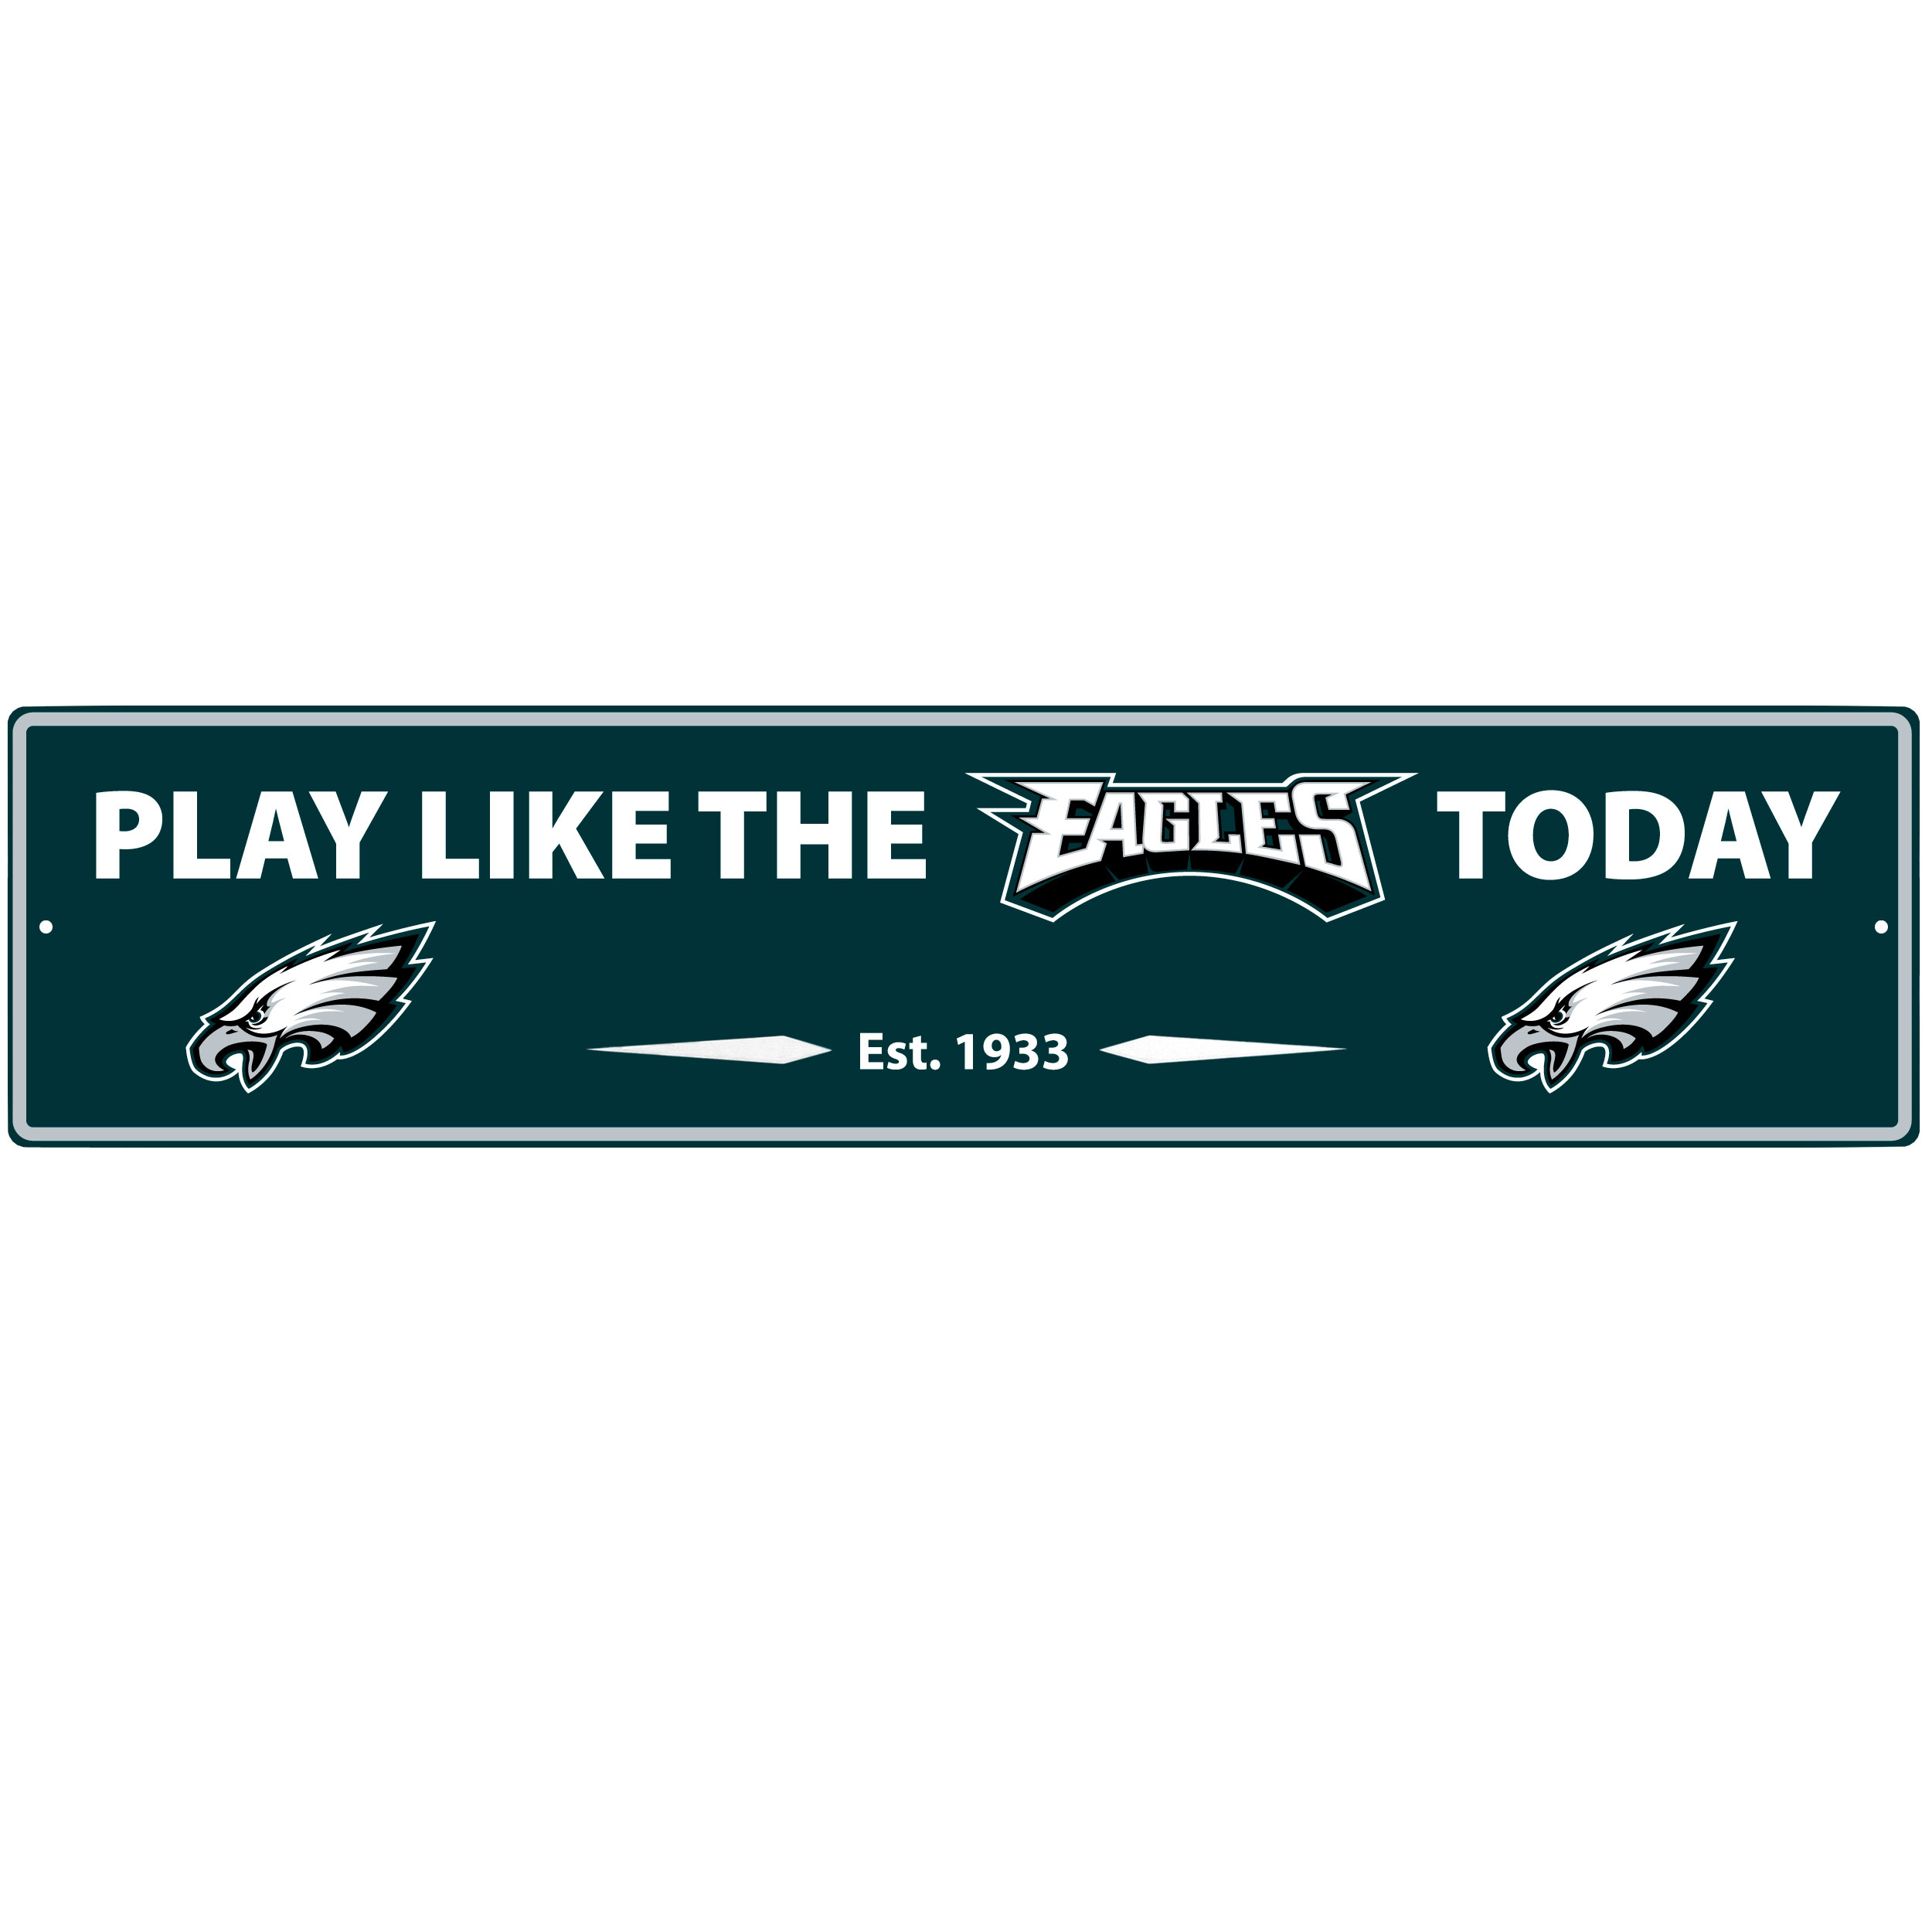 Philadelphia Eagles Street Sign Wall Plaque - This motivational plaque is perfect for hanging over the doorway of your fan cave reminding you to play like your champion Philadelphia Eagles! The sign is 20 inches wide and made of light-weight stamped aluminum. The bright team colors and classic design make this a must-have home décor accessory that would look great in any game room, living room or office!